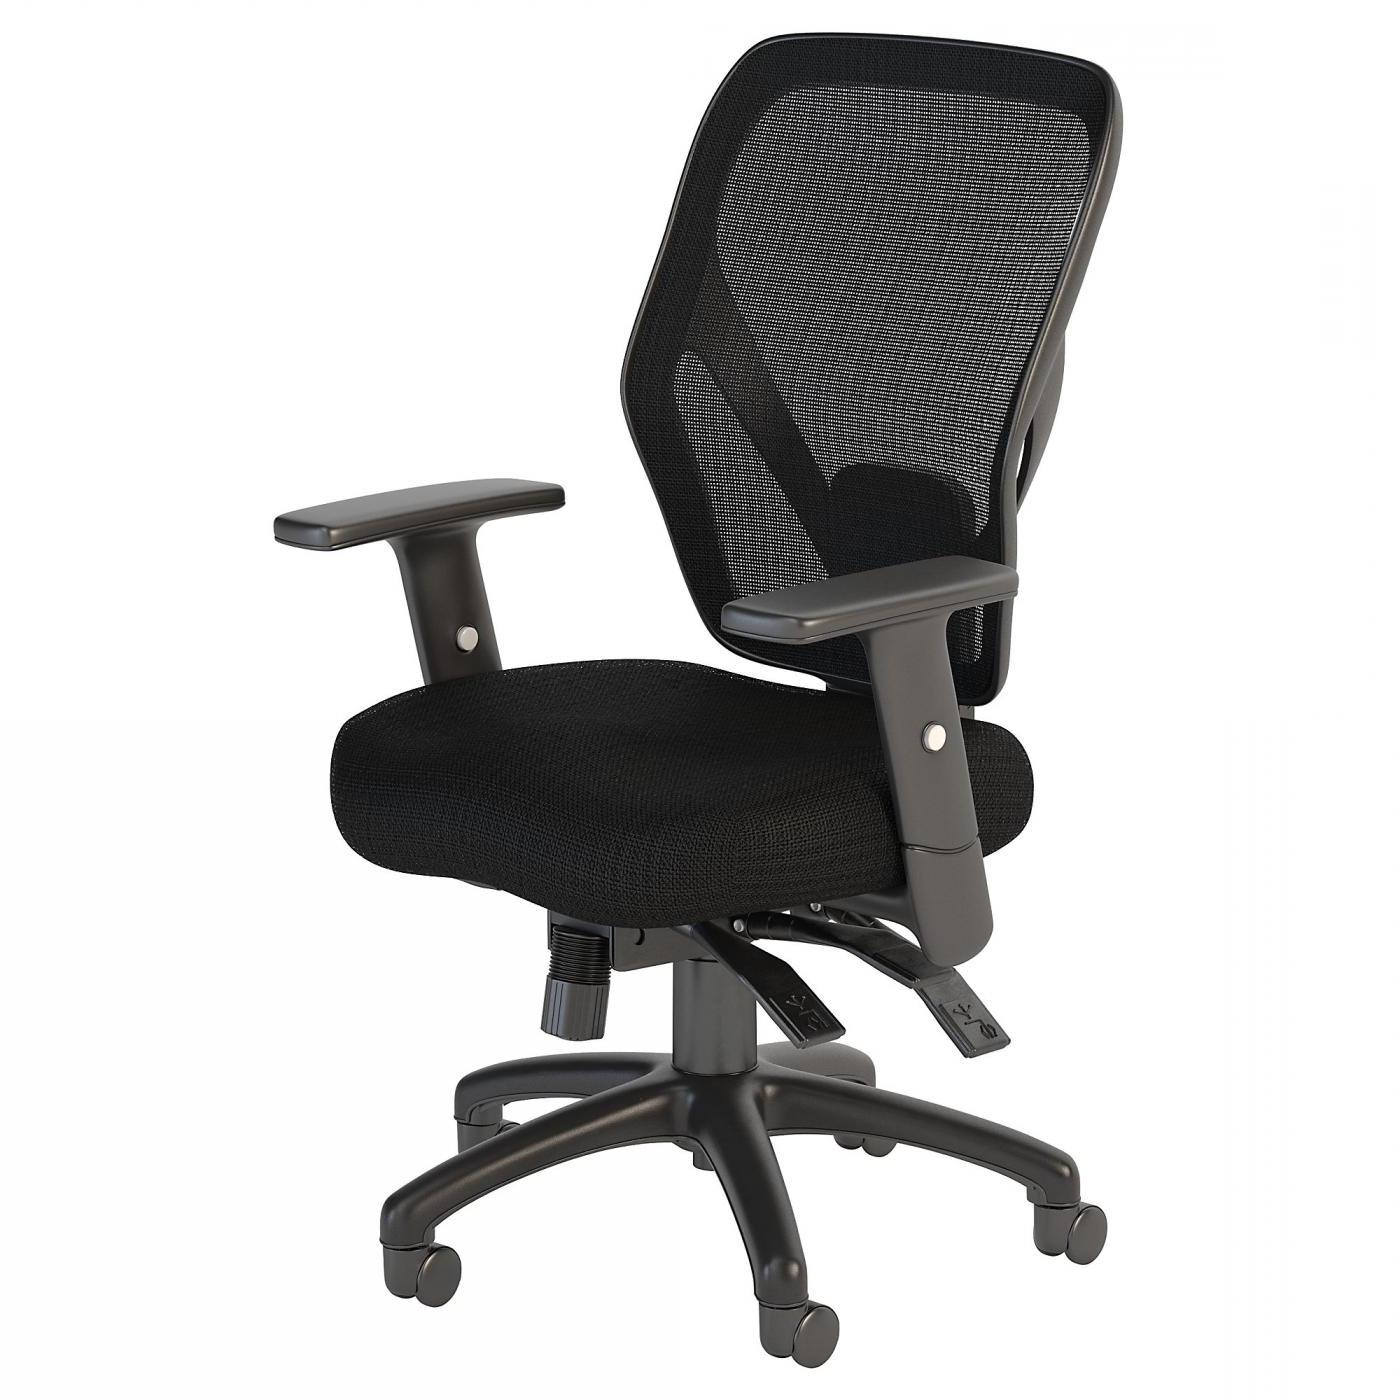 <font color=#c60><b>BUSH BUSINESS FURNITURE CORPORATE MID BACK MULTIFUNCTION MESH OFFICE CHAIR. FREE SHIPPING</font></b> </font></b></font></b>